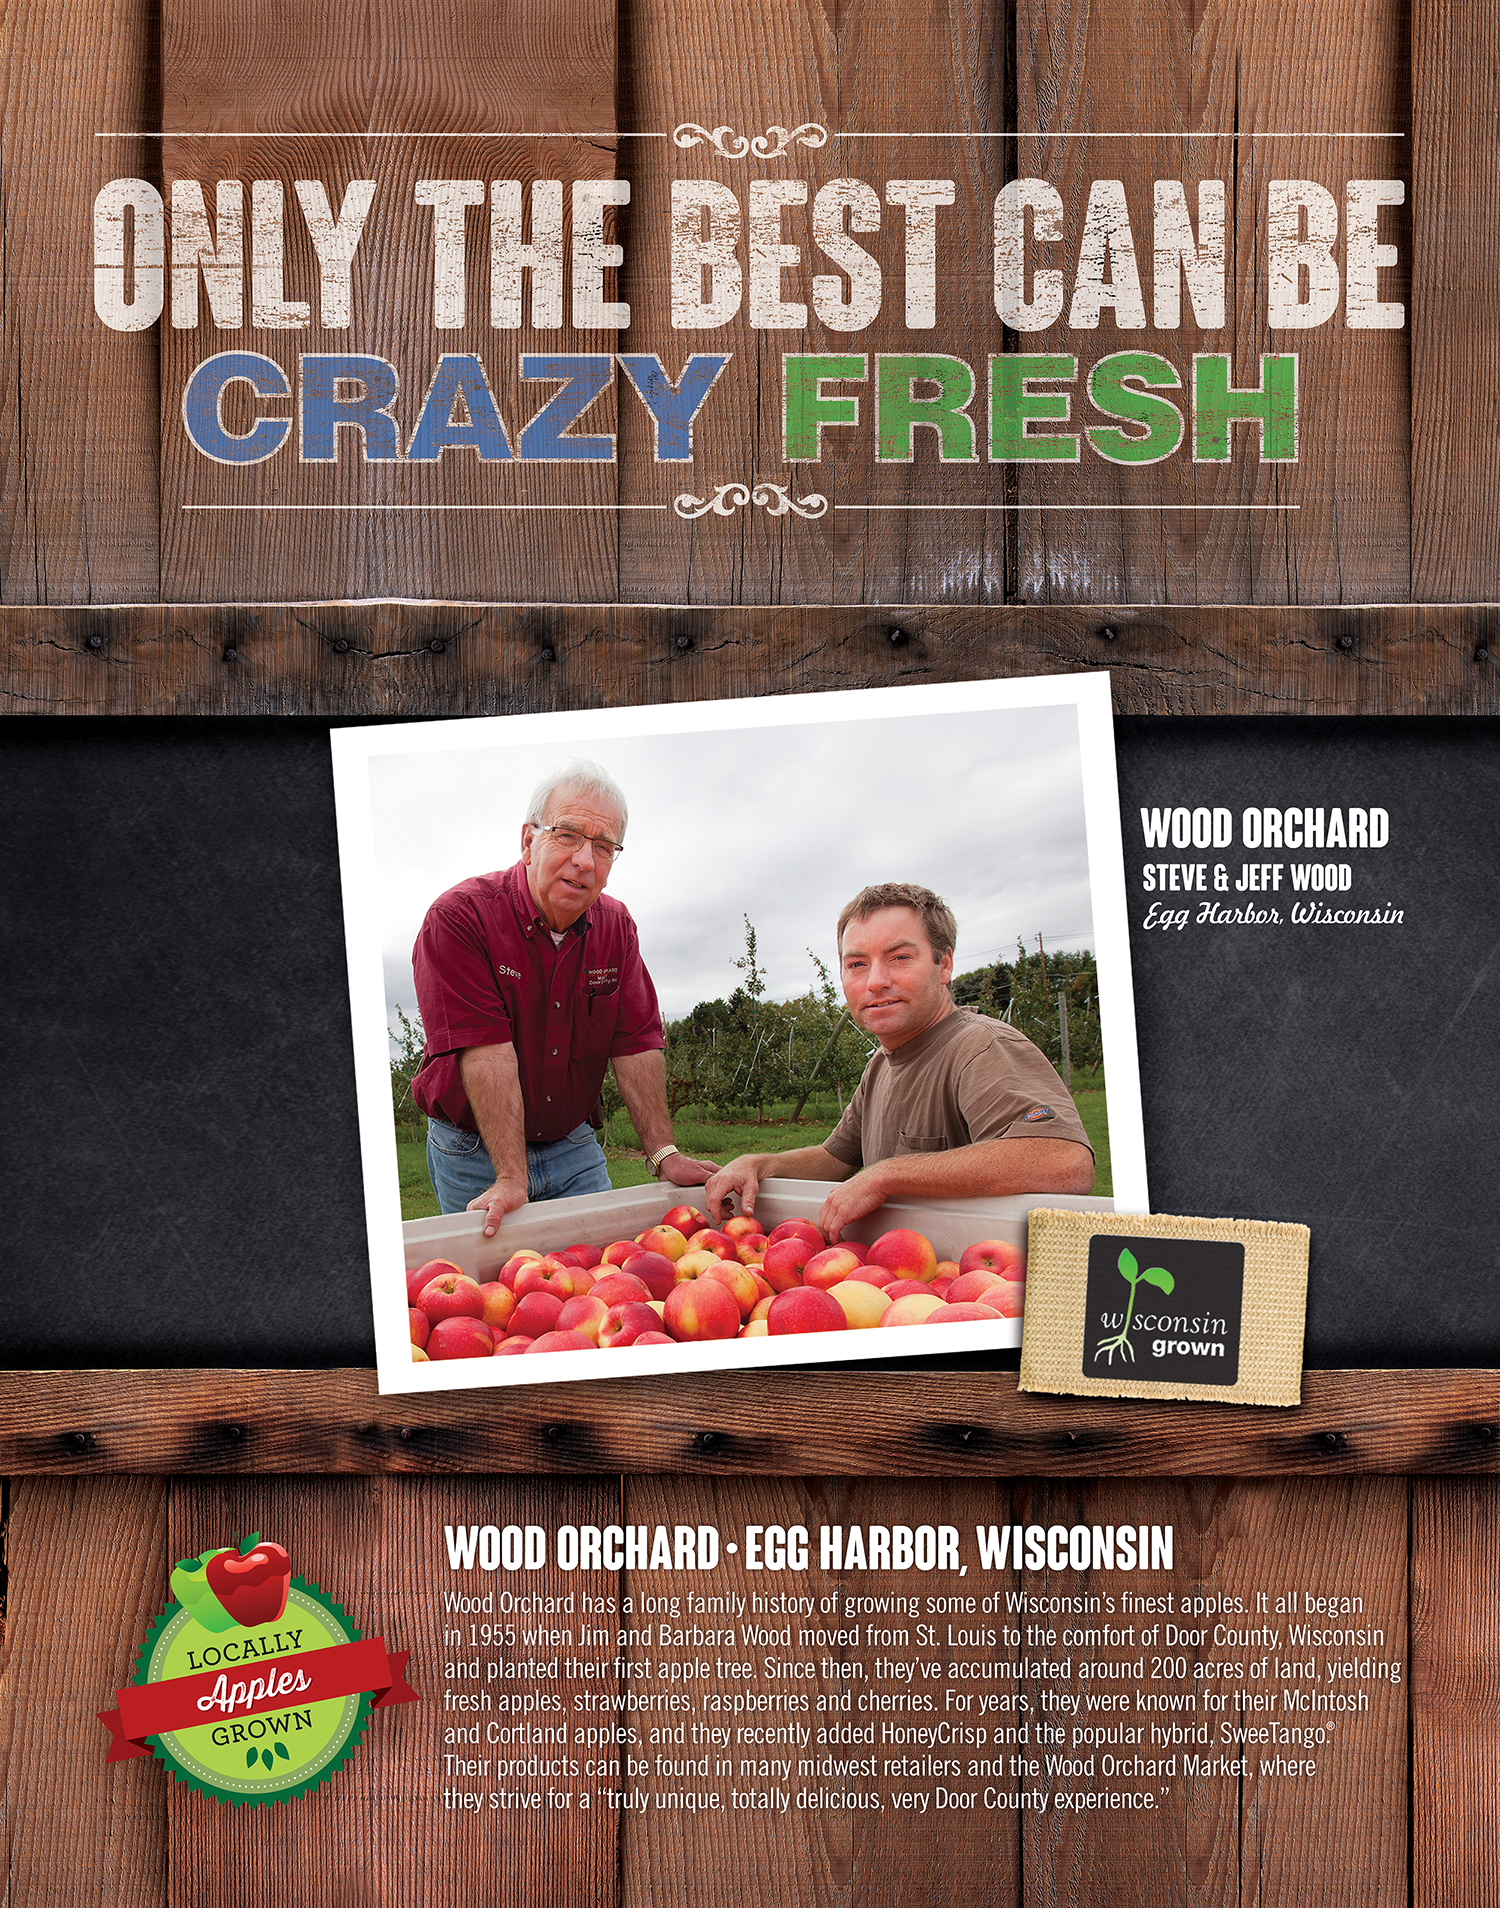 RDW_Posters_Apple growers iromans_22x28_FINAL_High Res-1.jpg